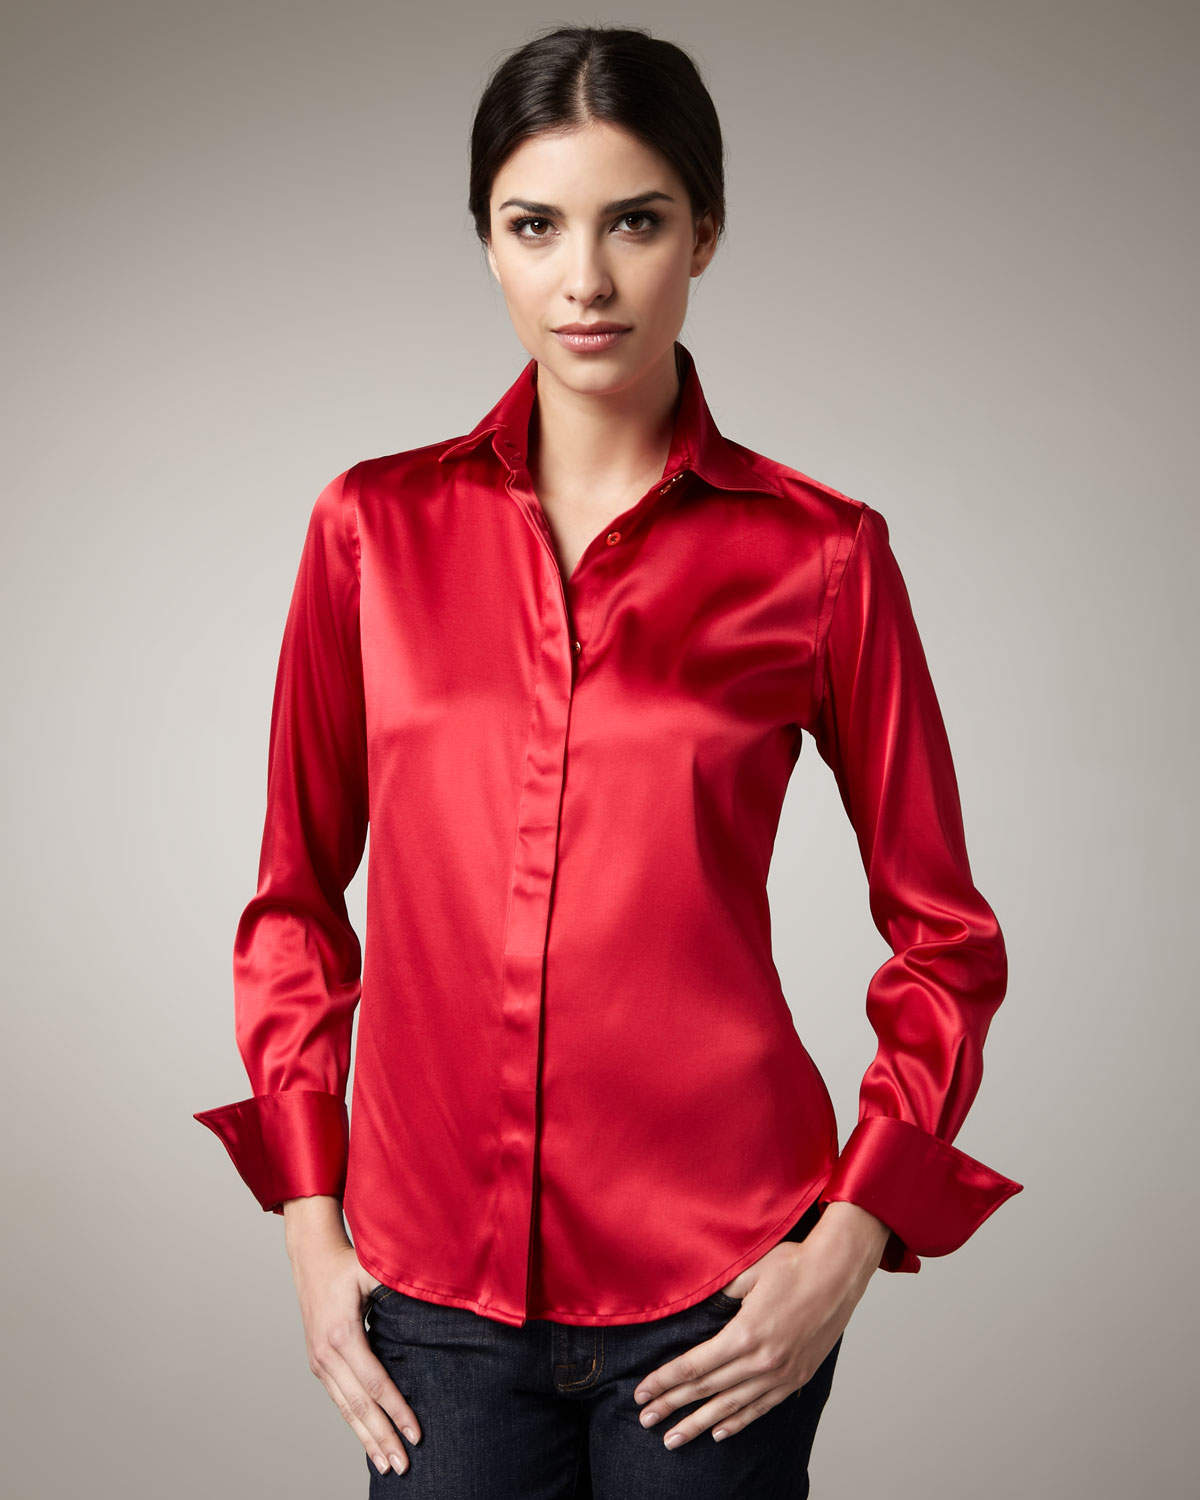 Satin Blouse Galleries 40